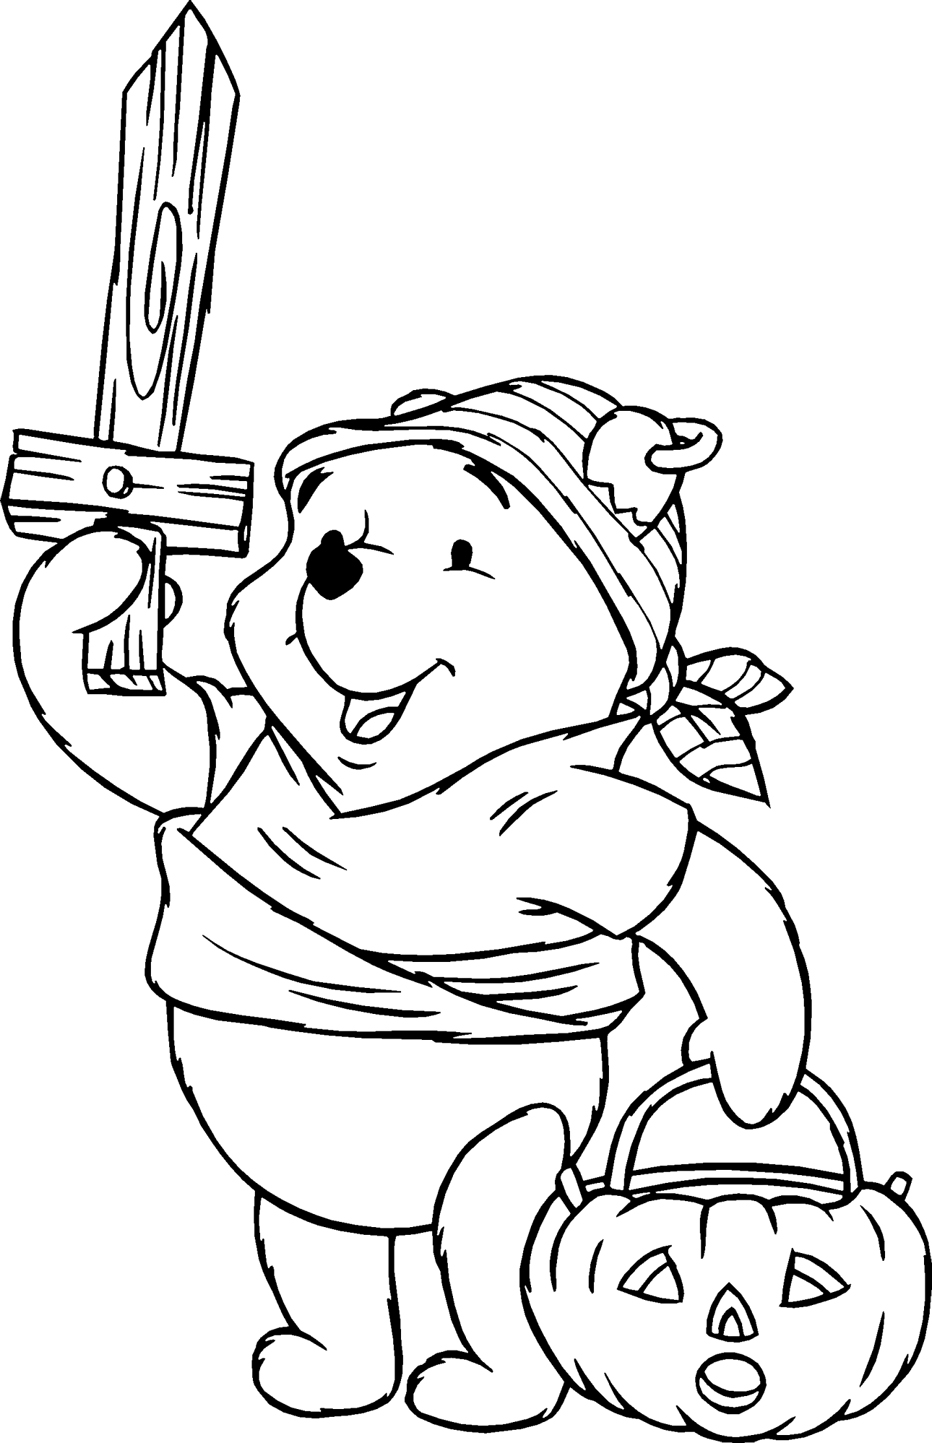 Winnie The Pooh Coloring Pages Learn To